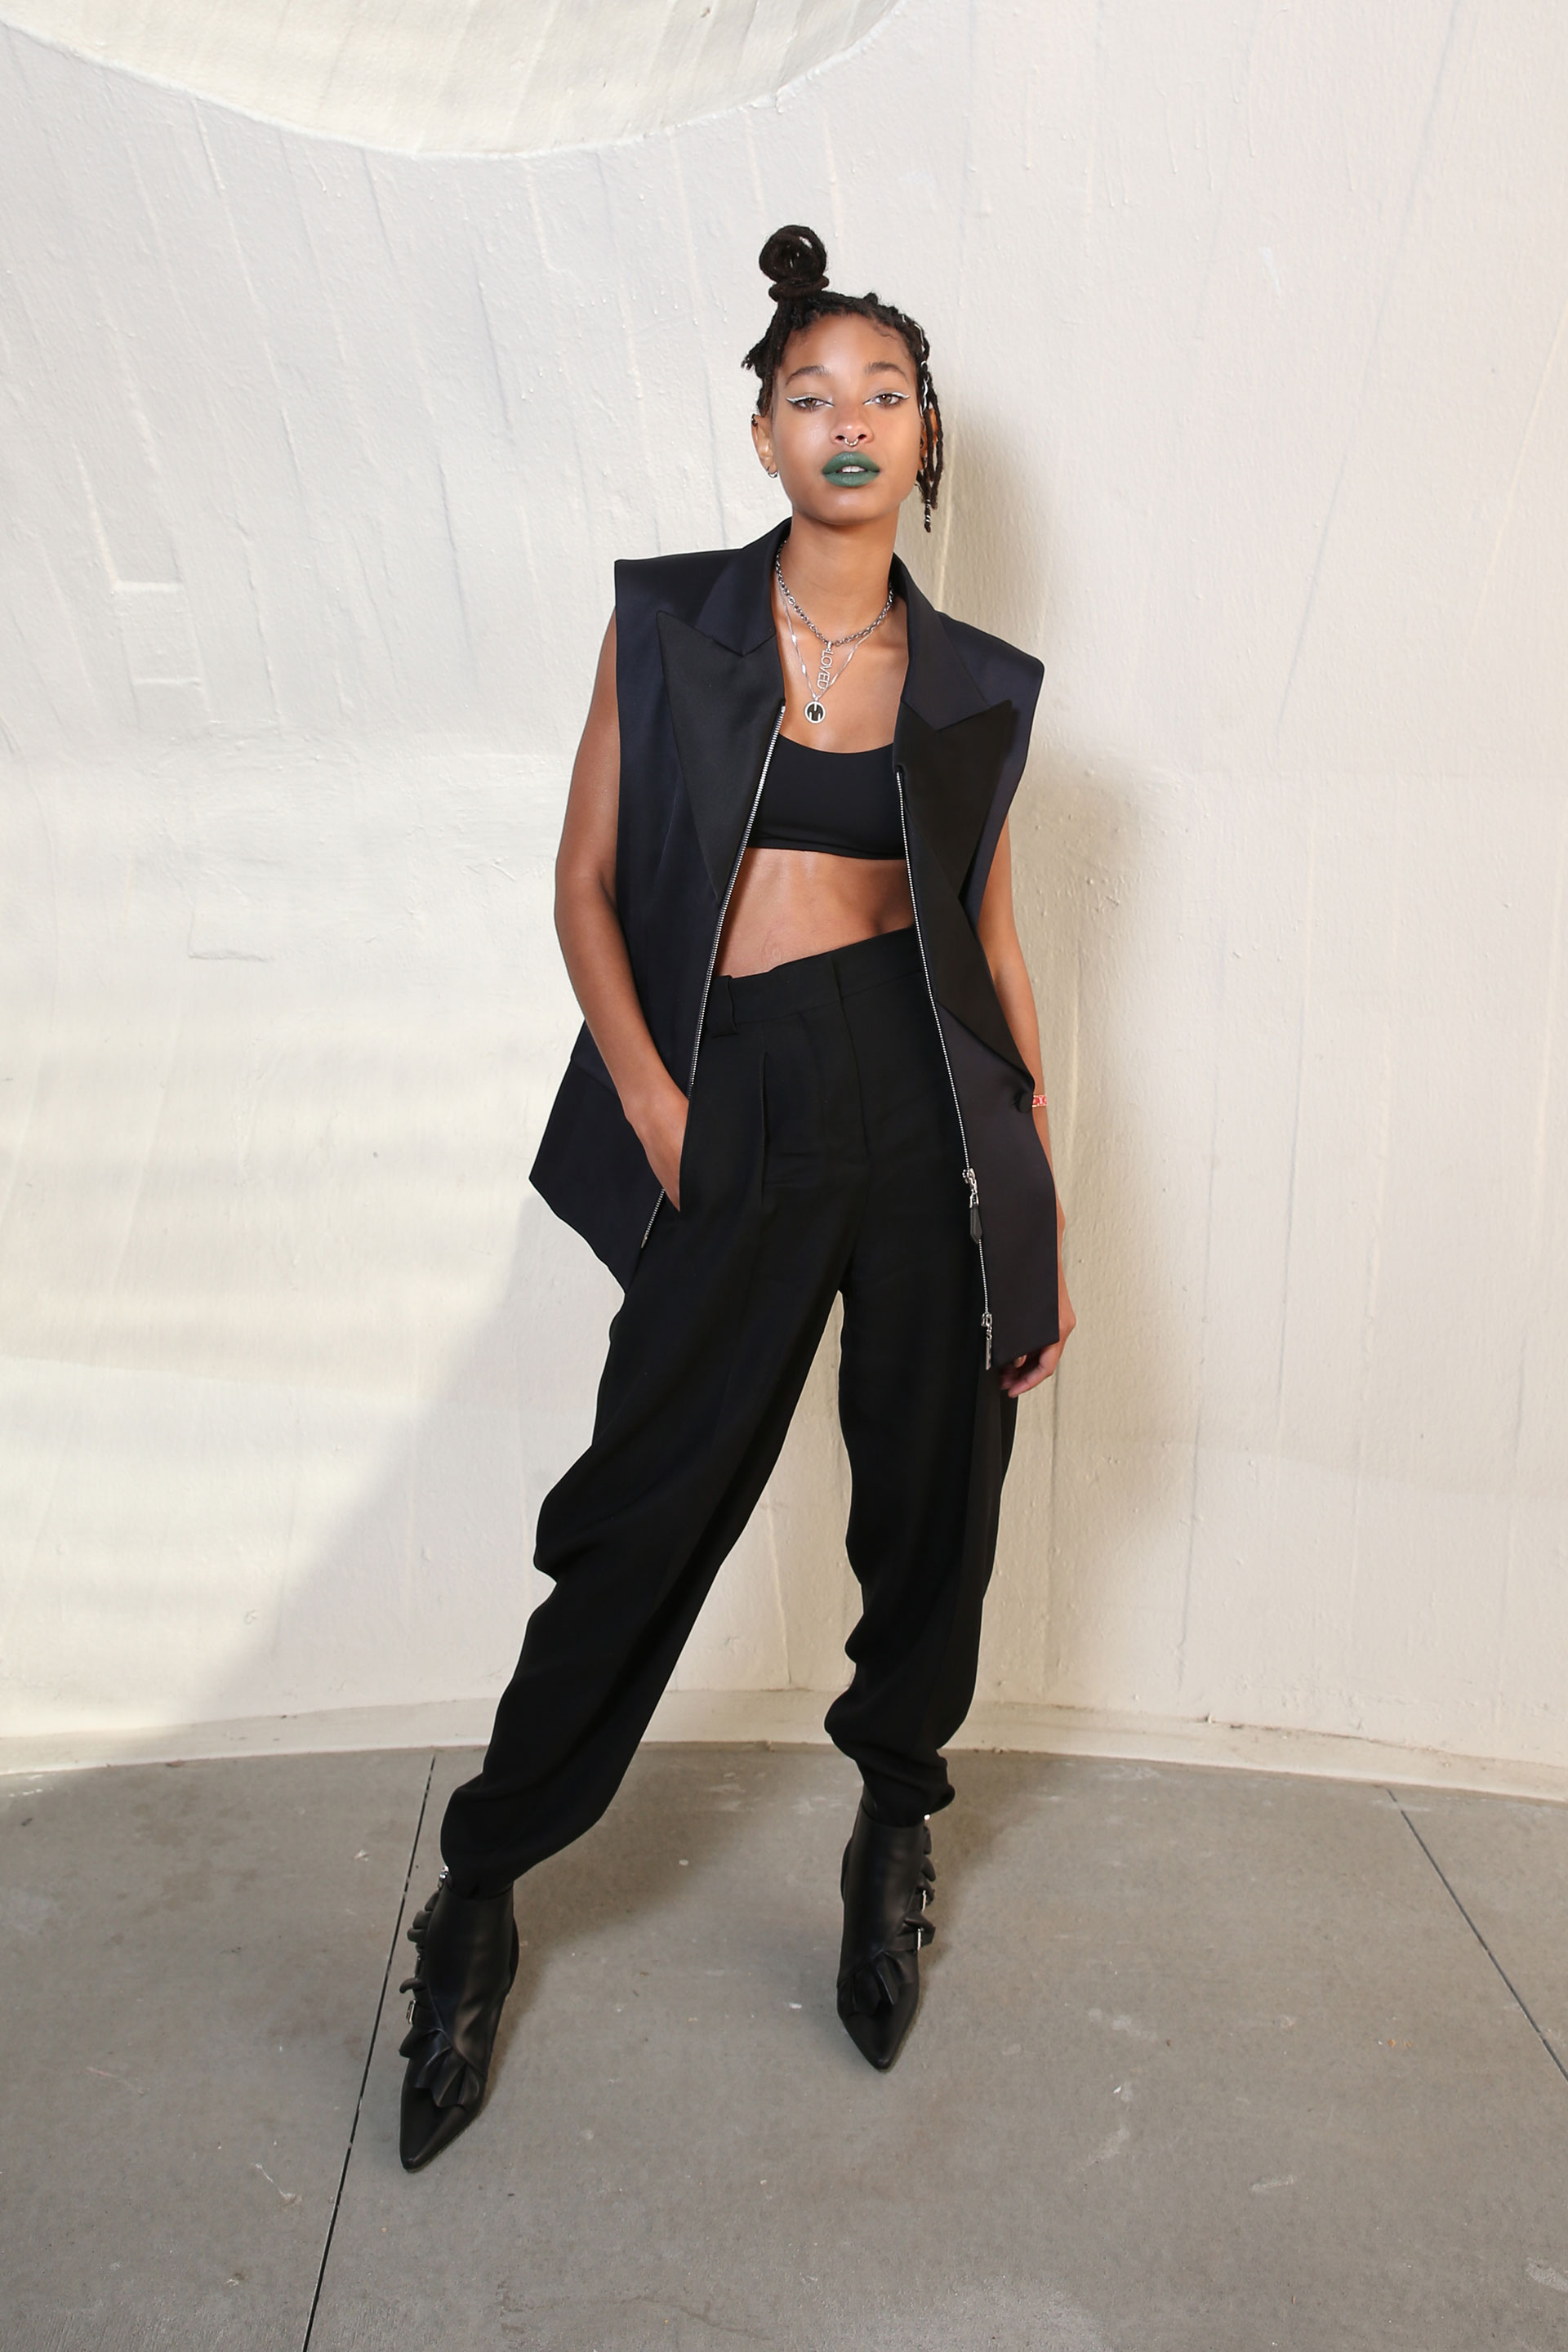 Willow Smith, girl in black.